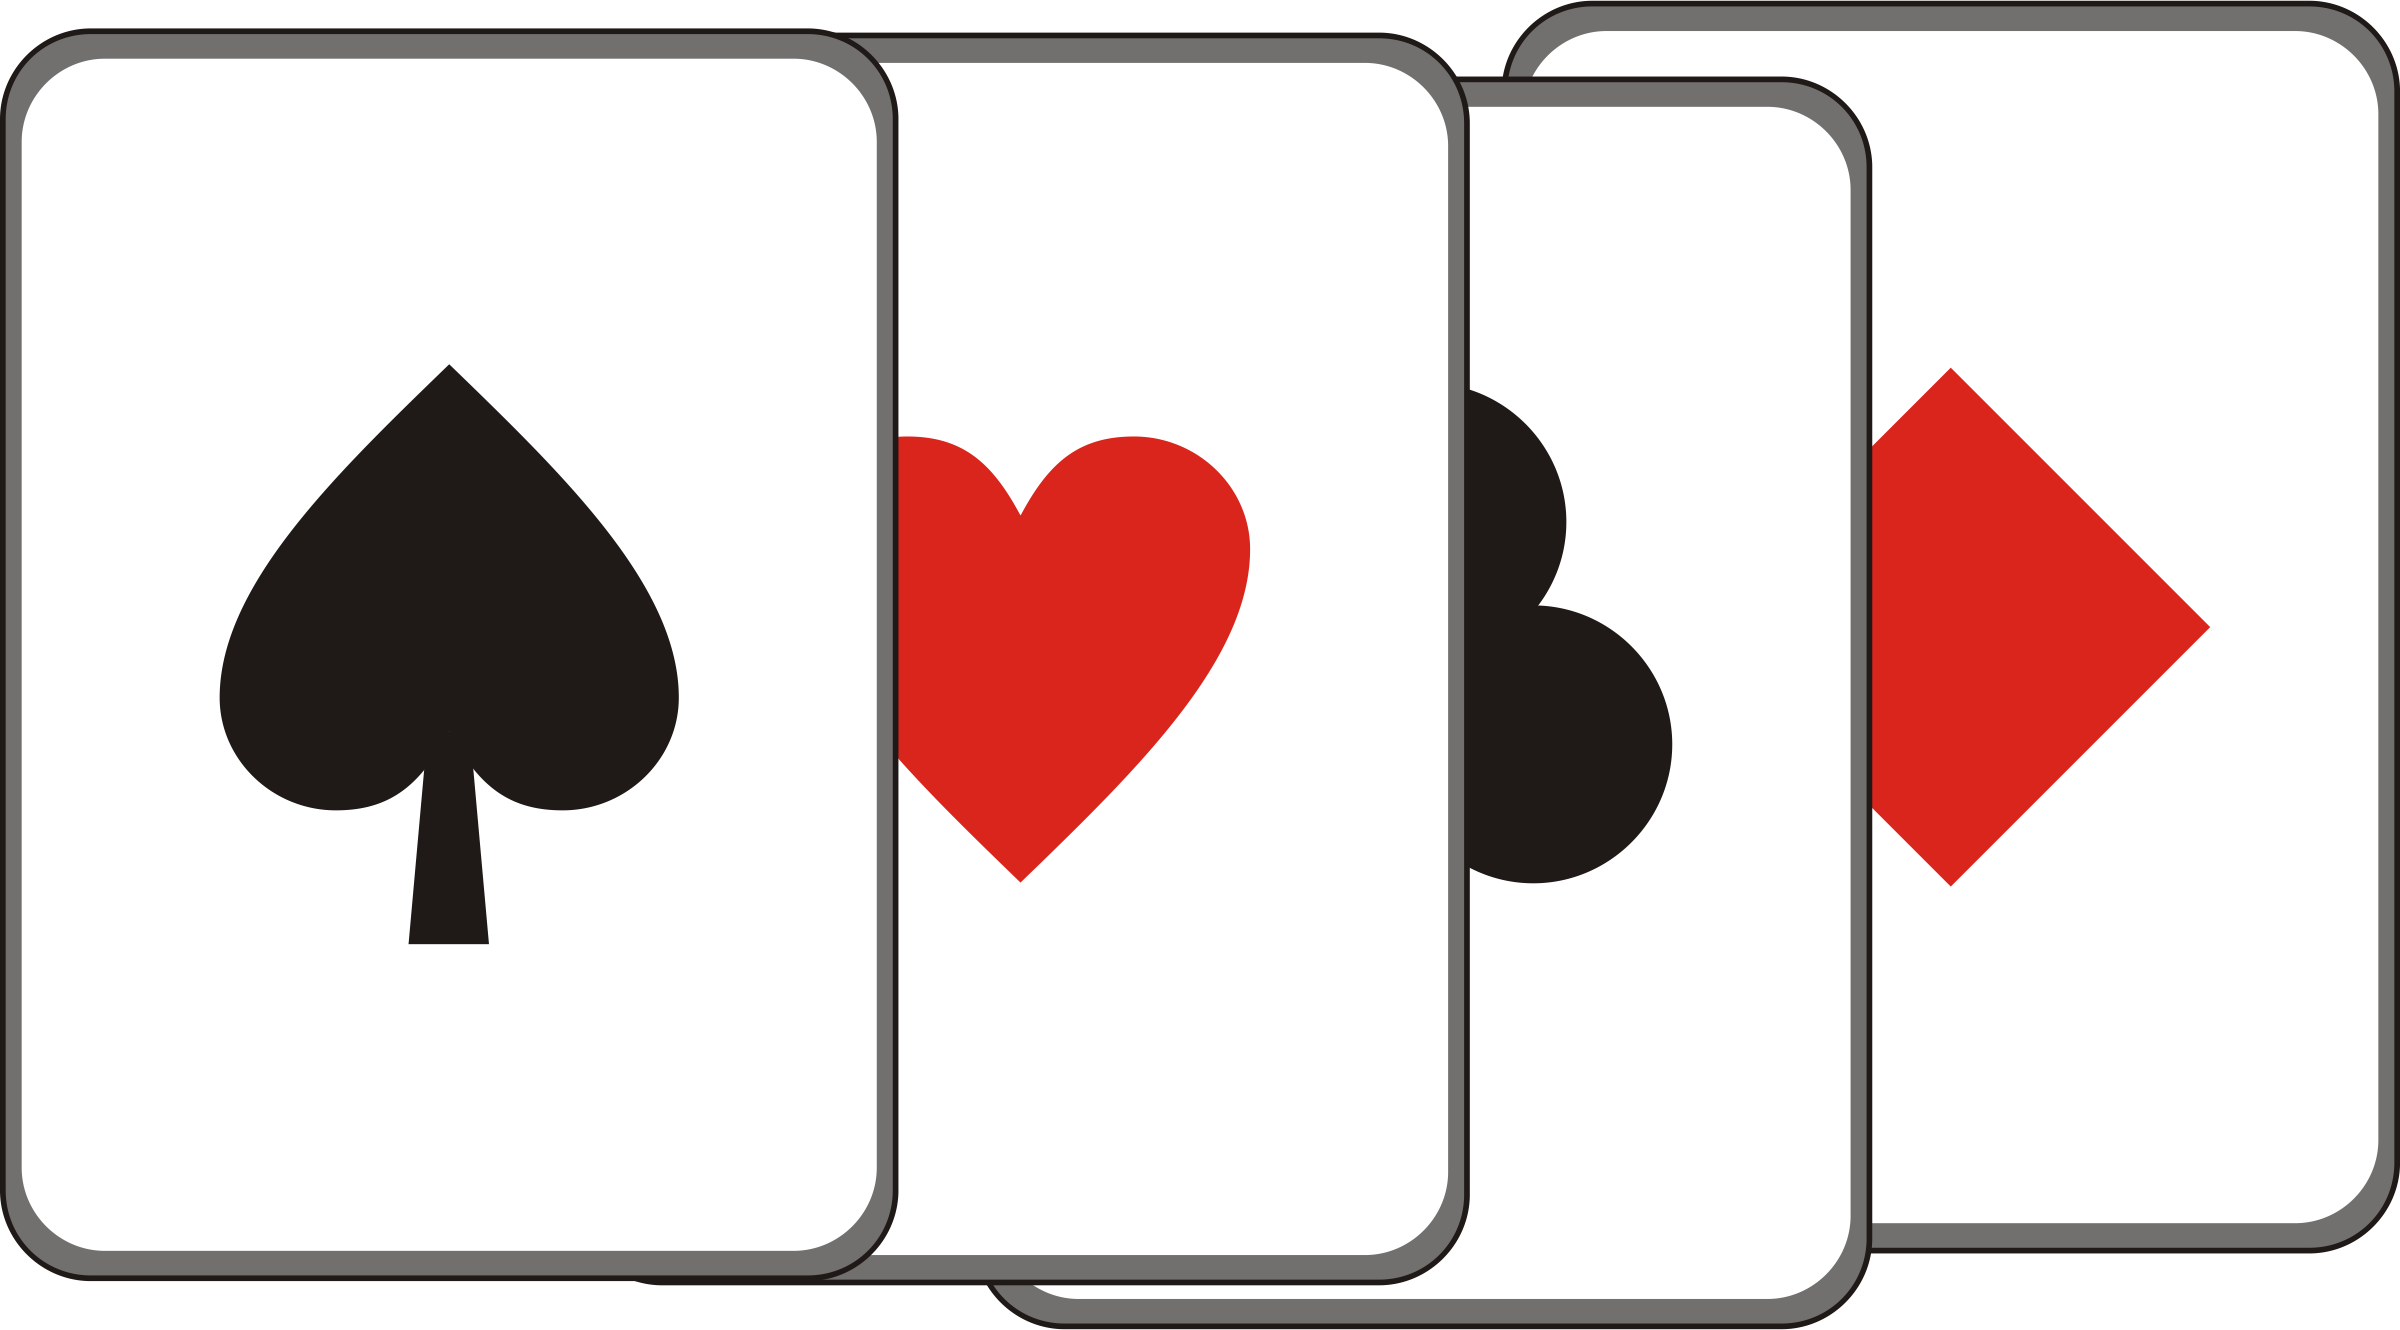 Clip Art Playing Cards Clipart clipart playing cards best clip art tumundografico